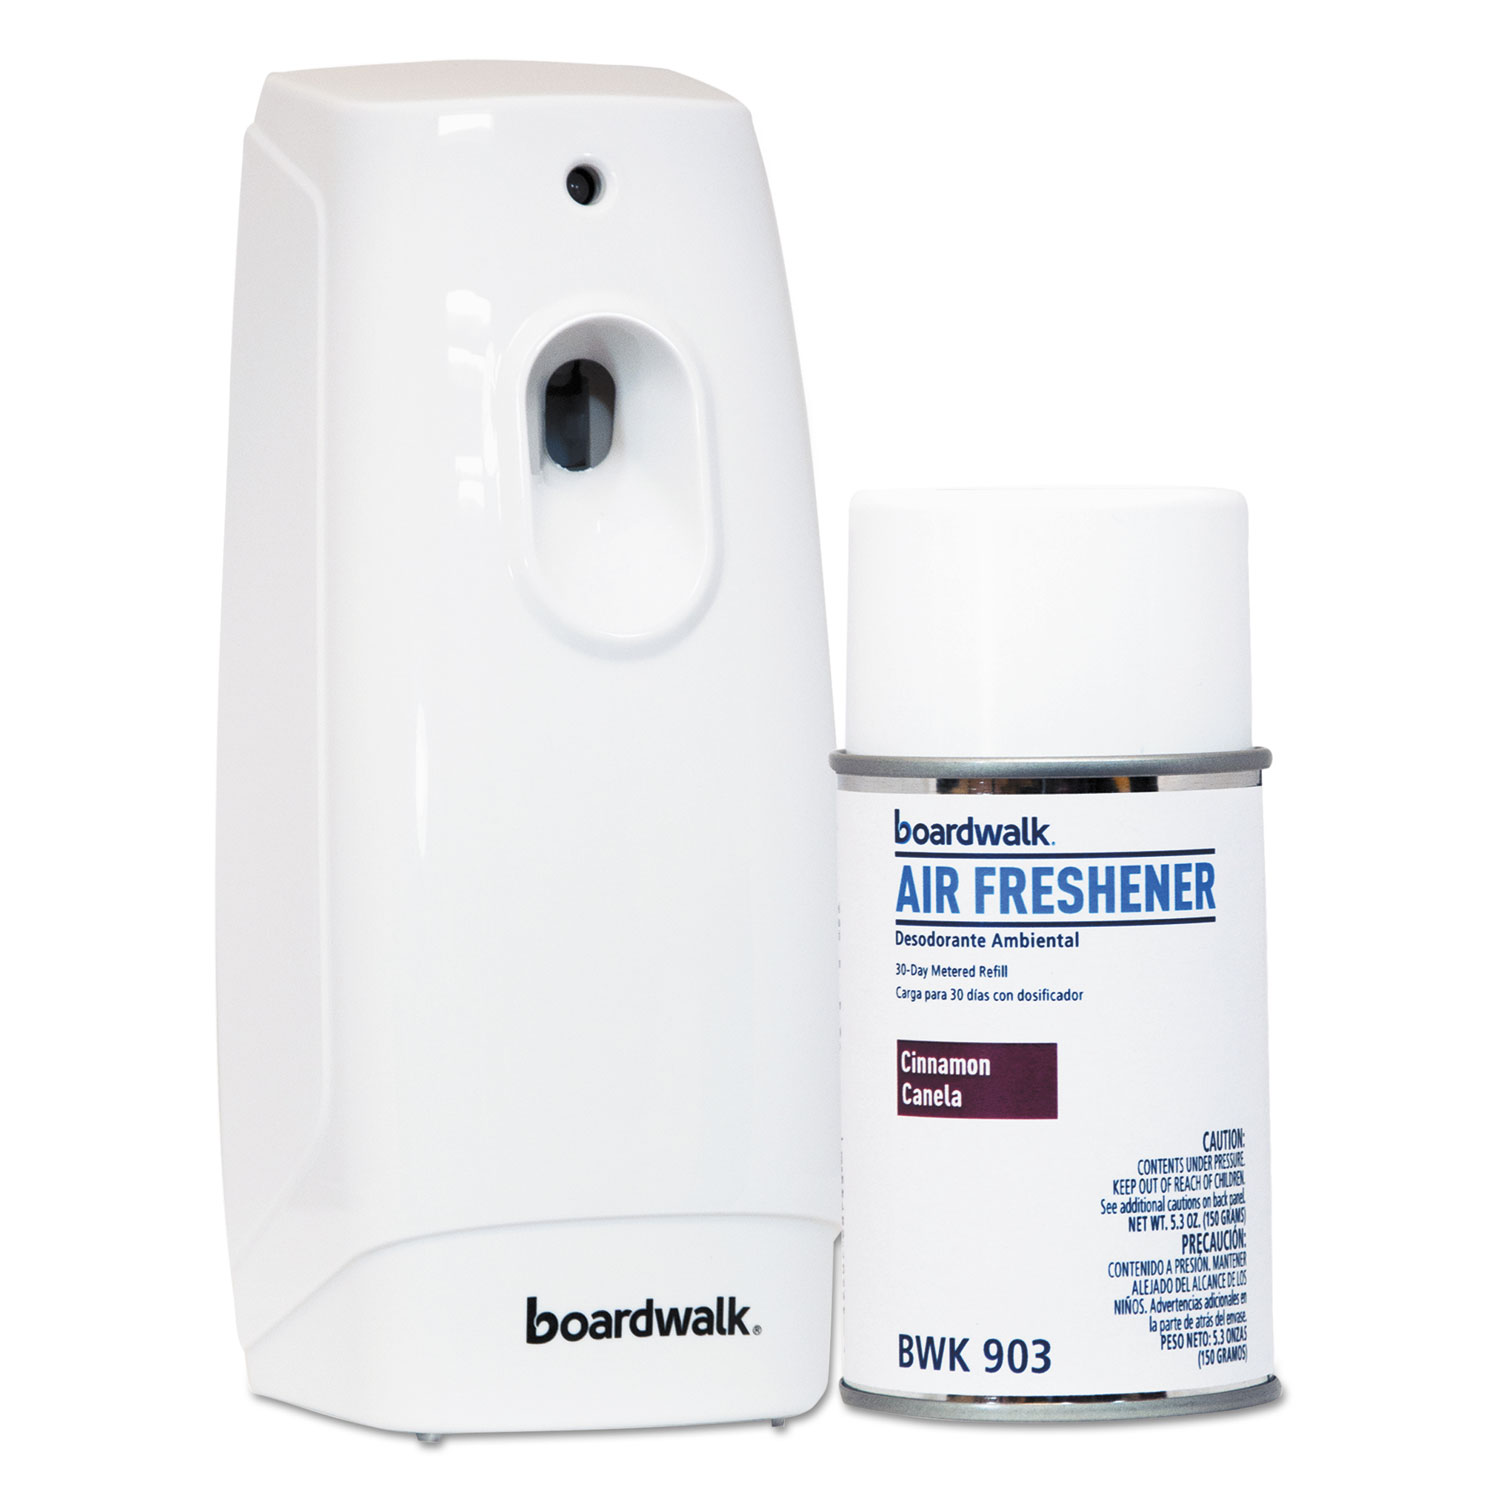 Air freshener dispenser starter kit by boardwalk bwk